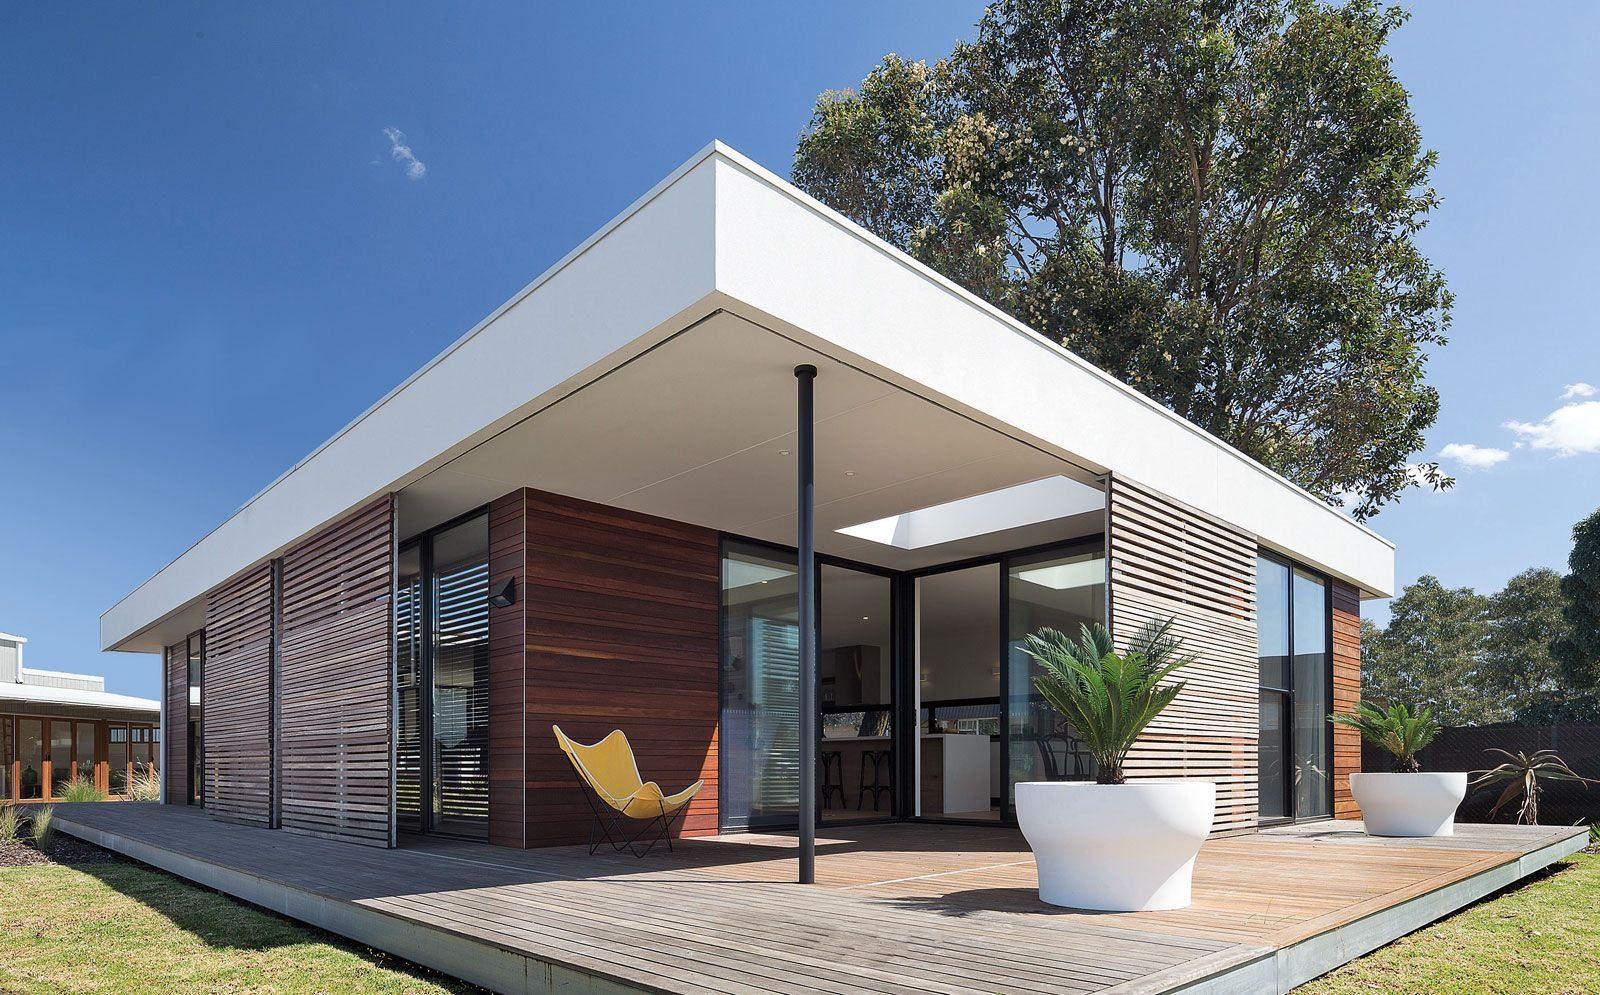 Pre Built Modular Homes modular homes plans and prices | prebuilt residential – australian